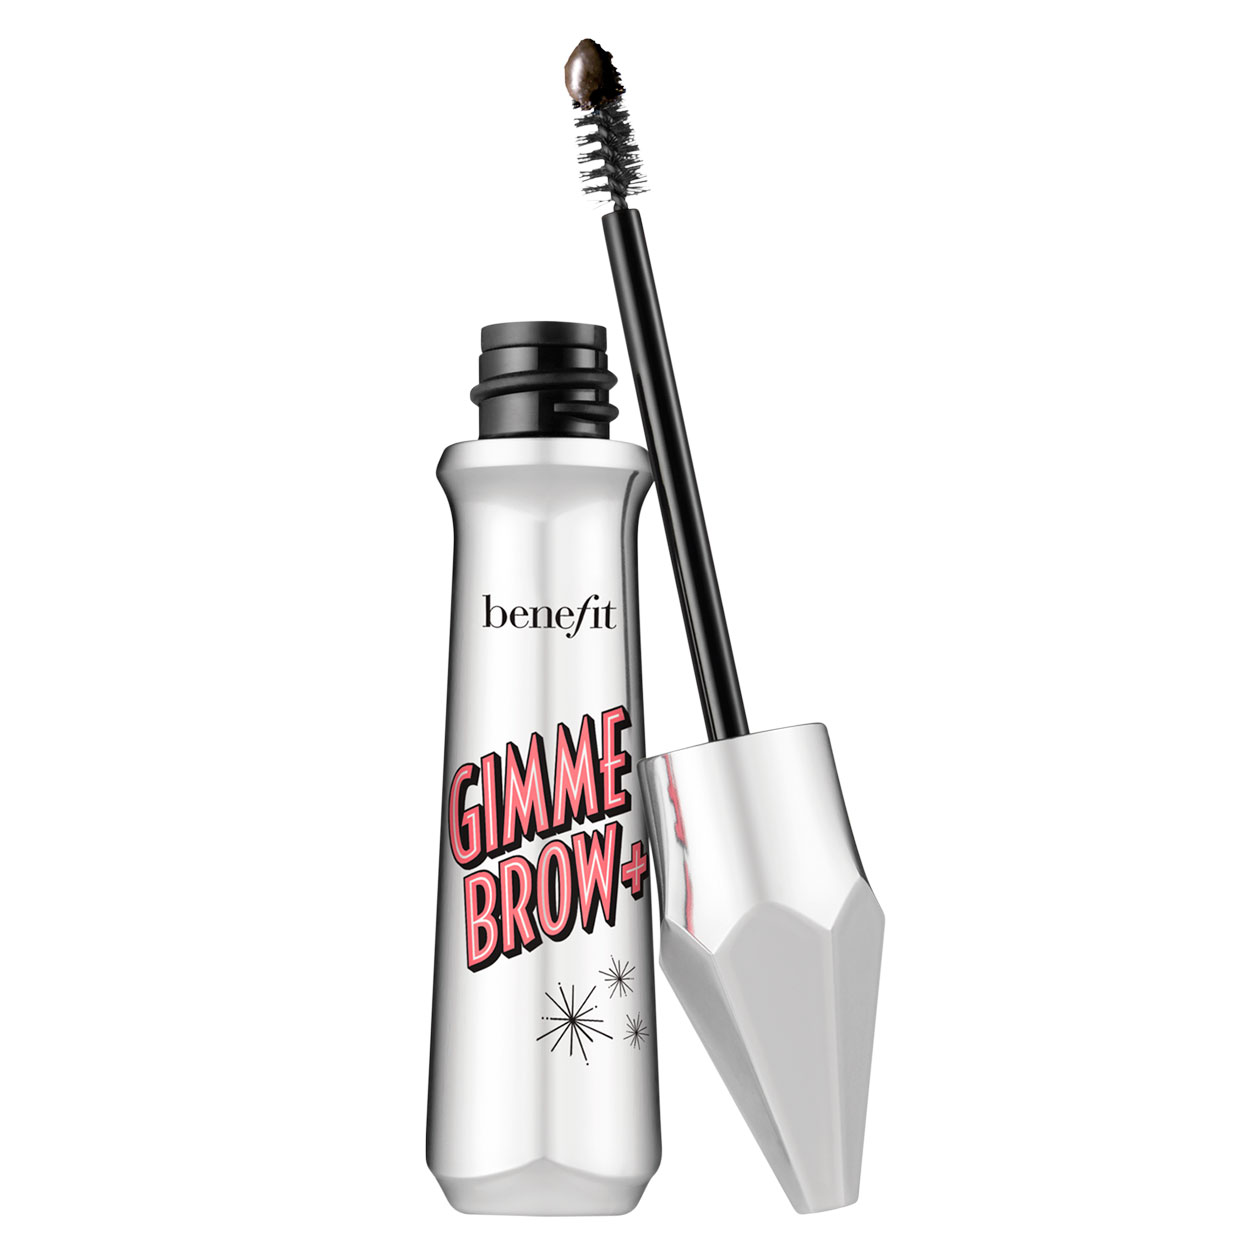 water-resistant eyebrow gel that grooms and tints brows